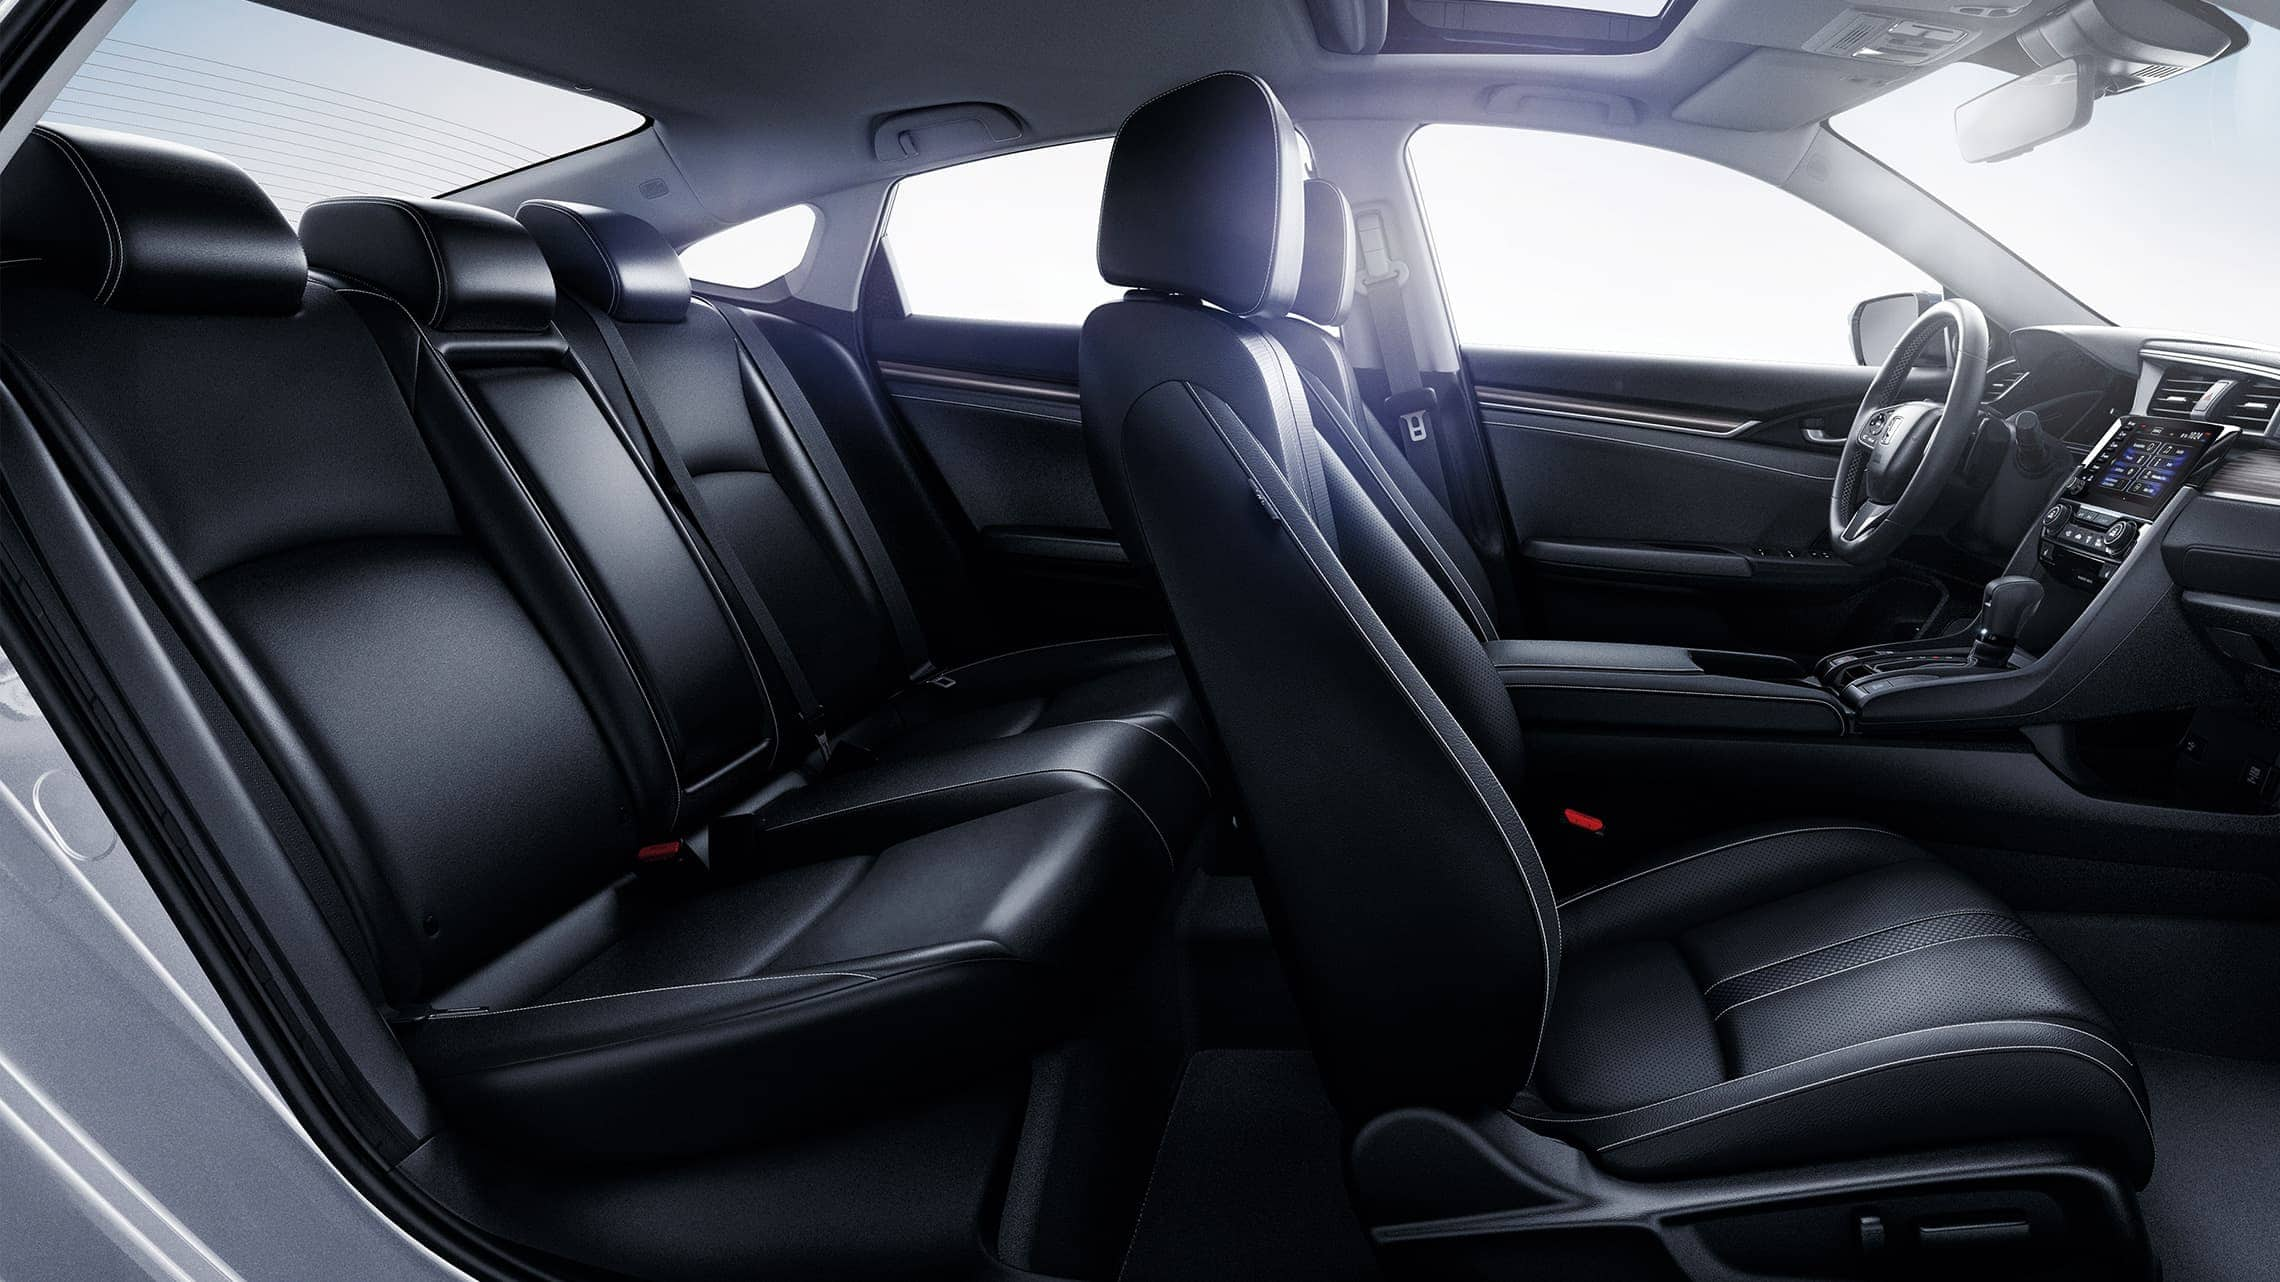 Vista del interior desde el lado del pasajero del Honda Civic Touring Sedán 2020 con interior en Black Leather.